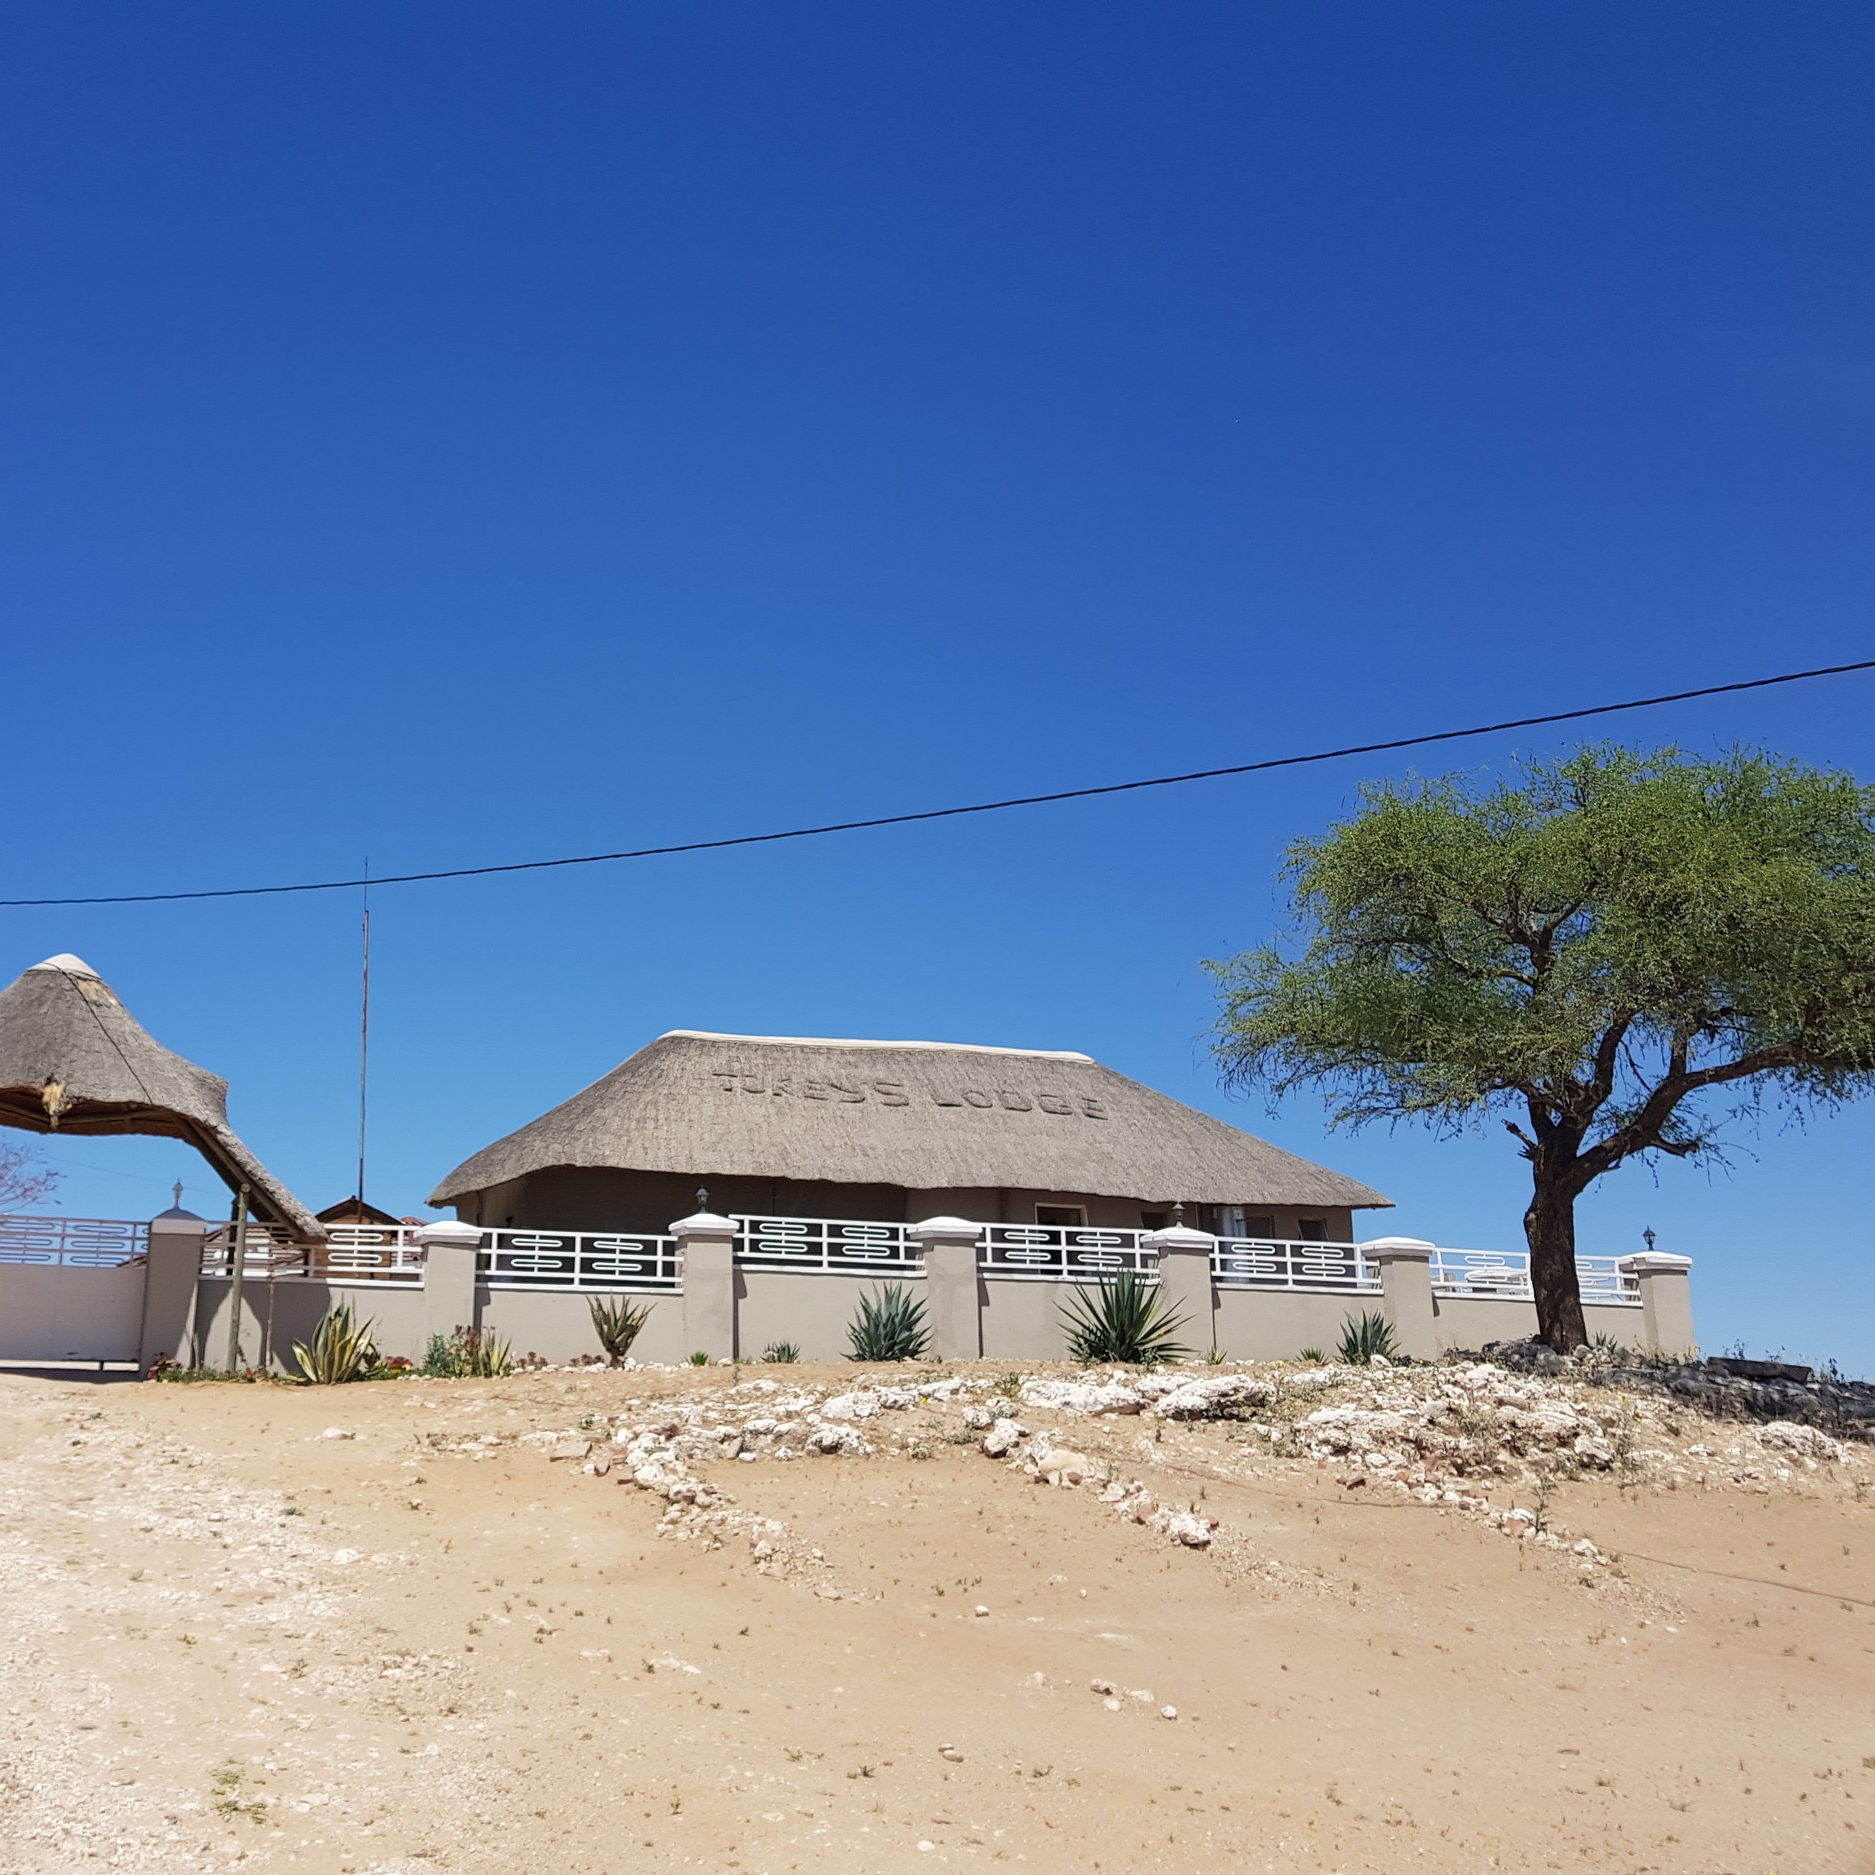 Tokey´s Lodge - Service Description∙ Accomodation, Bar, Restaurant, Conference and Catering ServicesOpening Hours:Monday - Friday: 06:00-06:00Saturday: 06:00-06:00Sunday: 06:00-06:00Directions:Behind Main KgotlaModimo WardContact: Mr. Tsietso📞 (+267) 73 06 46 99✎ tockeys.info@gmail.com